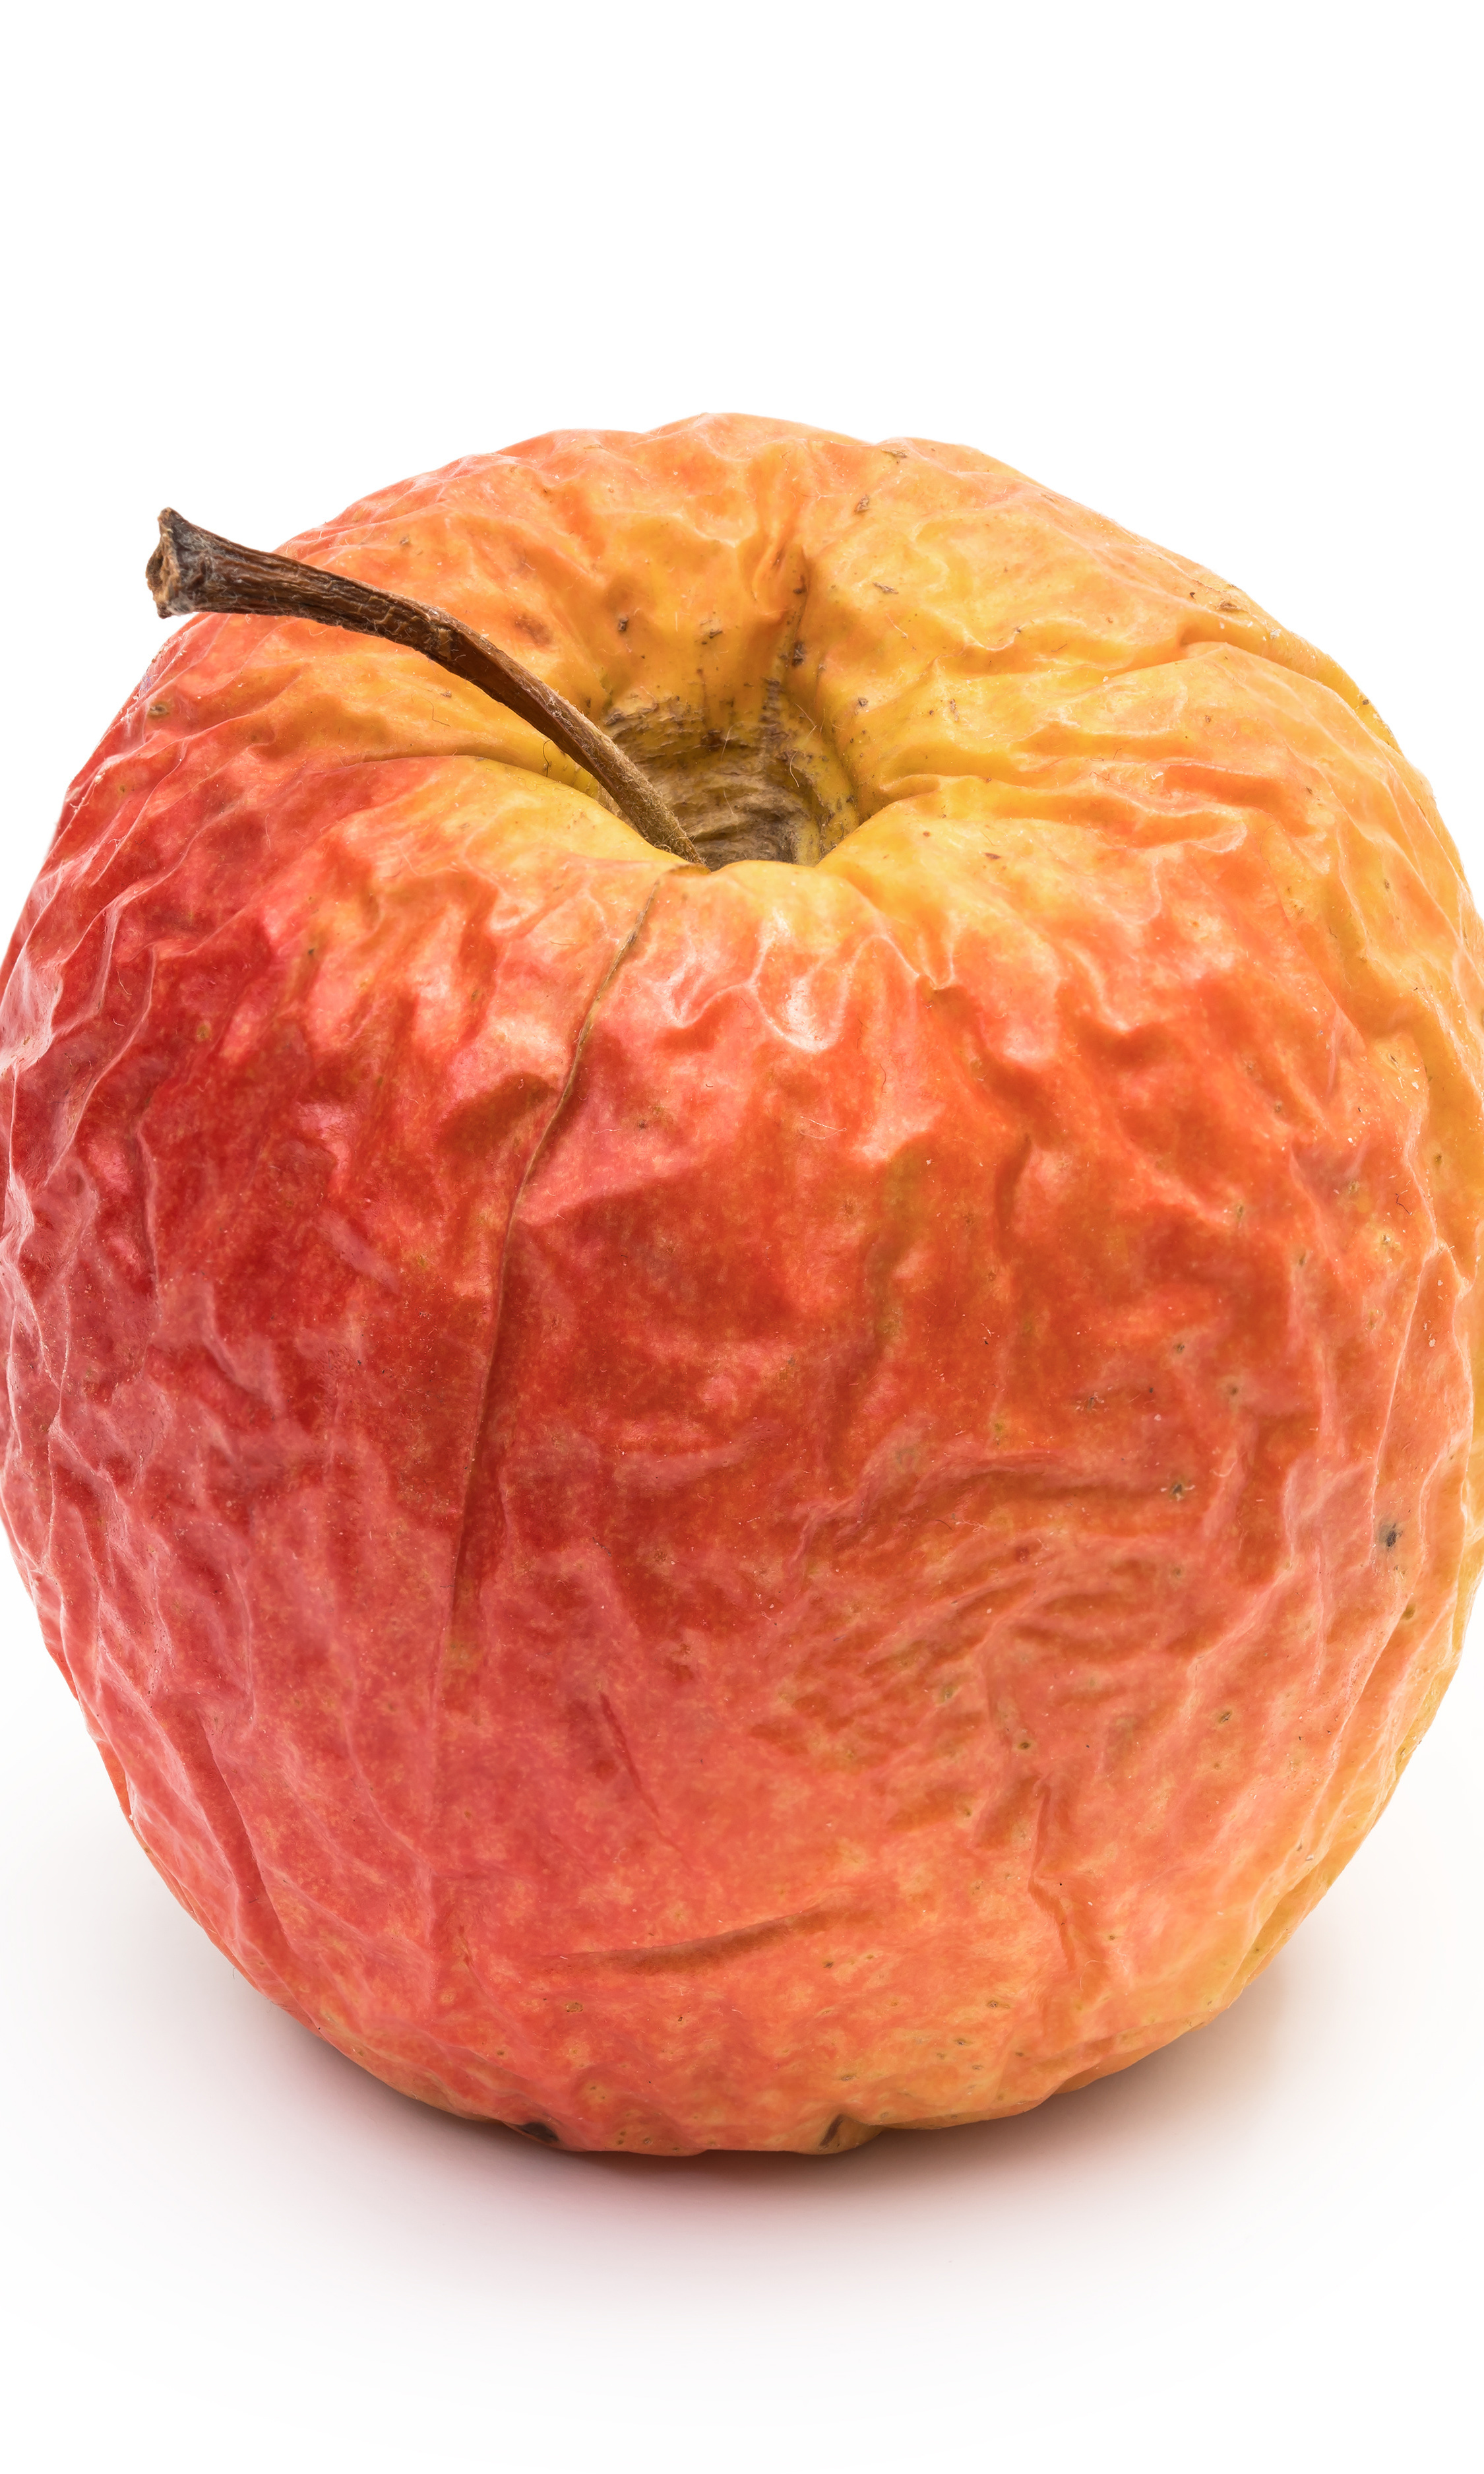 Don't Let One Bad Apple Spoil the Bunch: Dealing with Difficult Employees